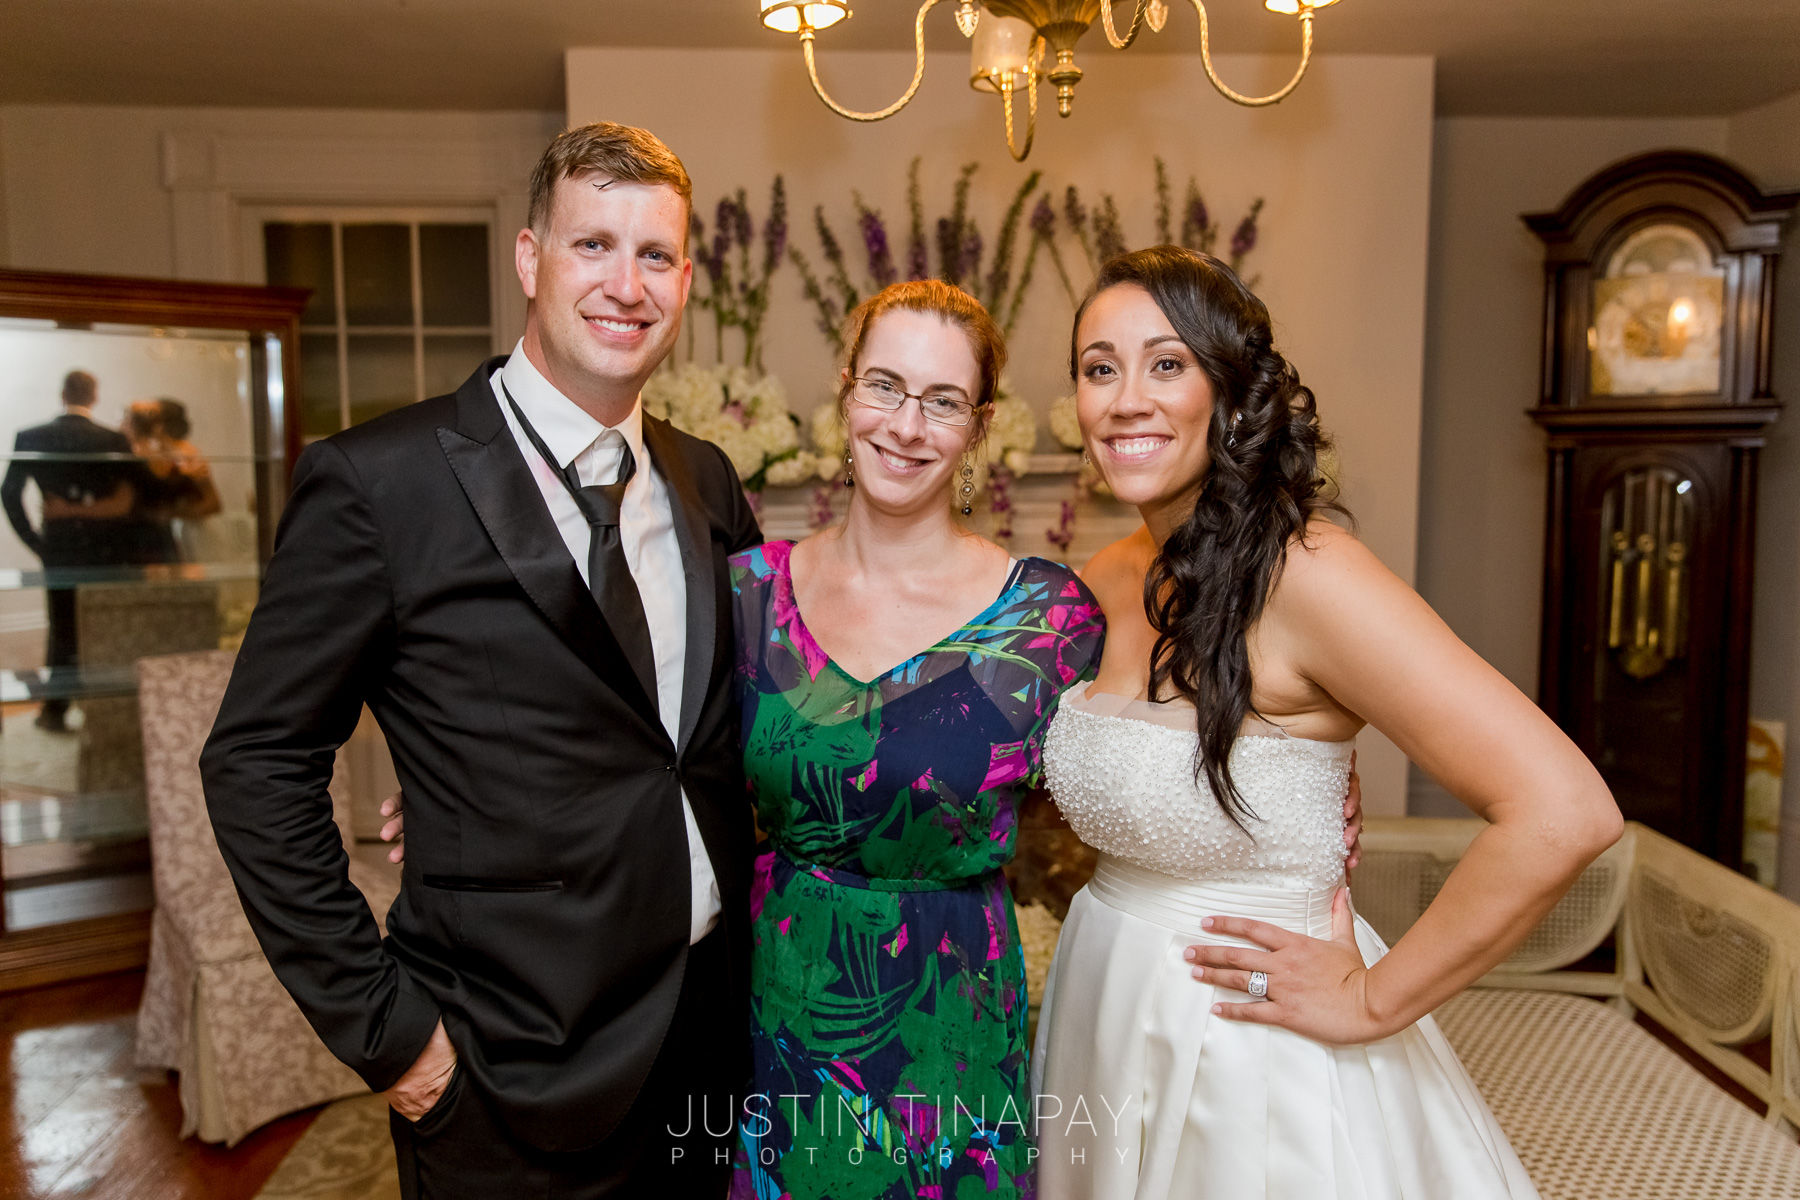 wedding planner posing with bride and groom